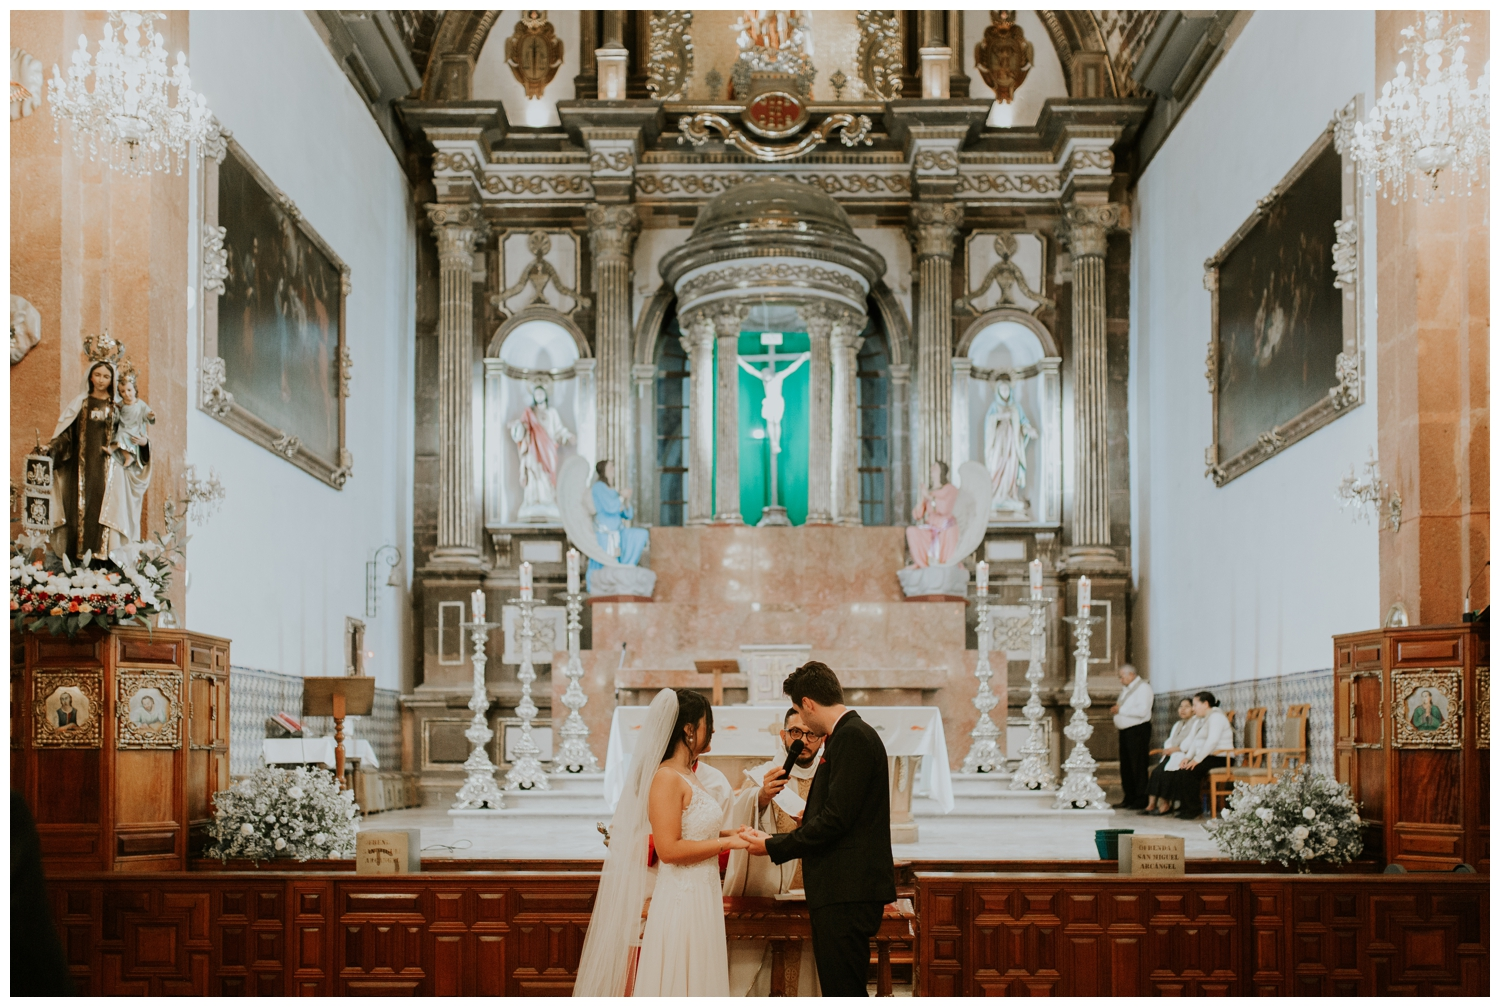 Shane+Sofia, San Miguel de Allende Wedding, Mexico Wedding, Contista Productions Wedding Photography_0083.jpg